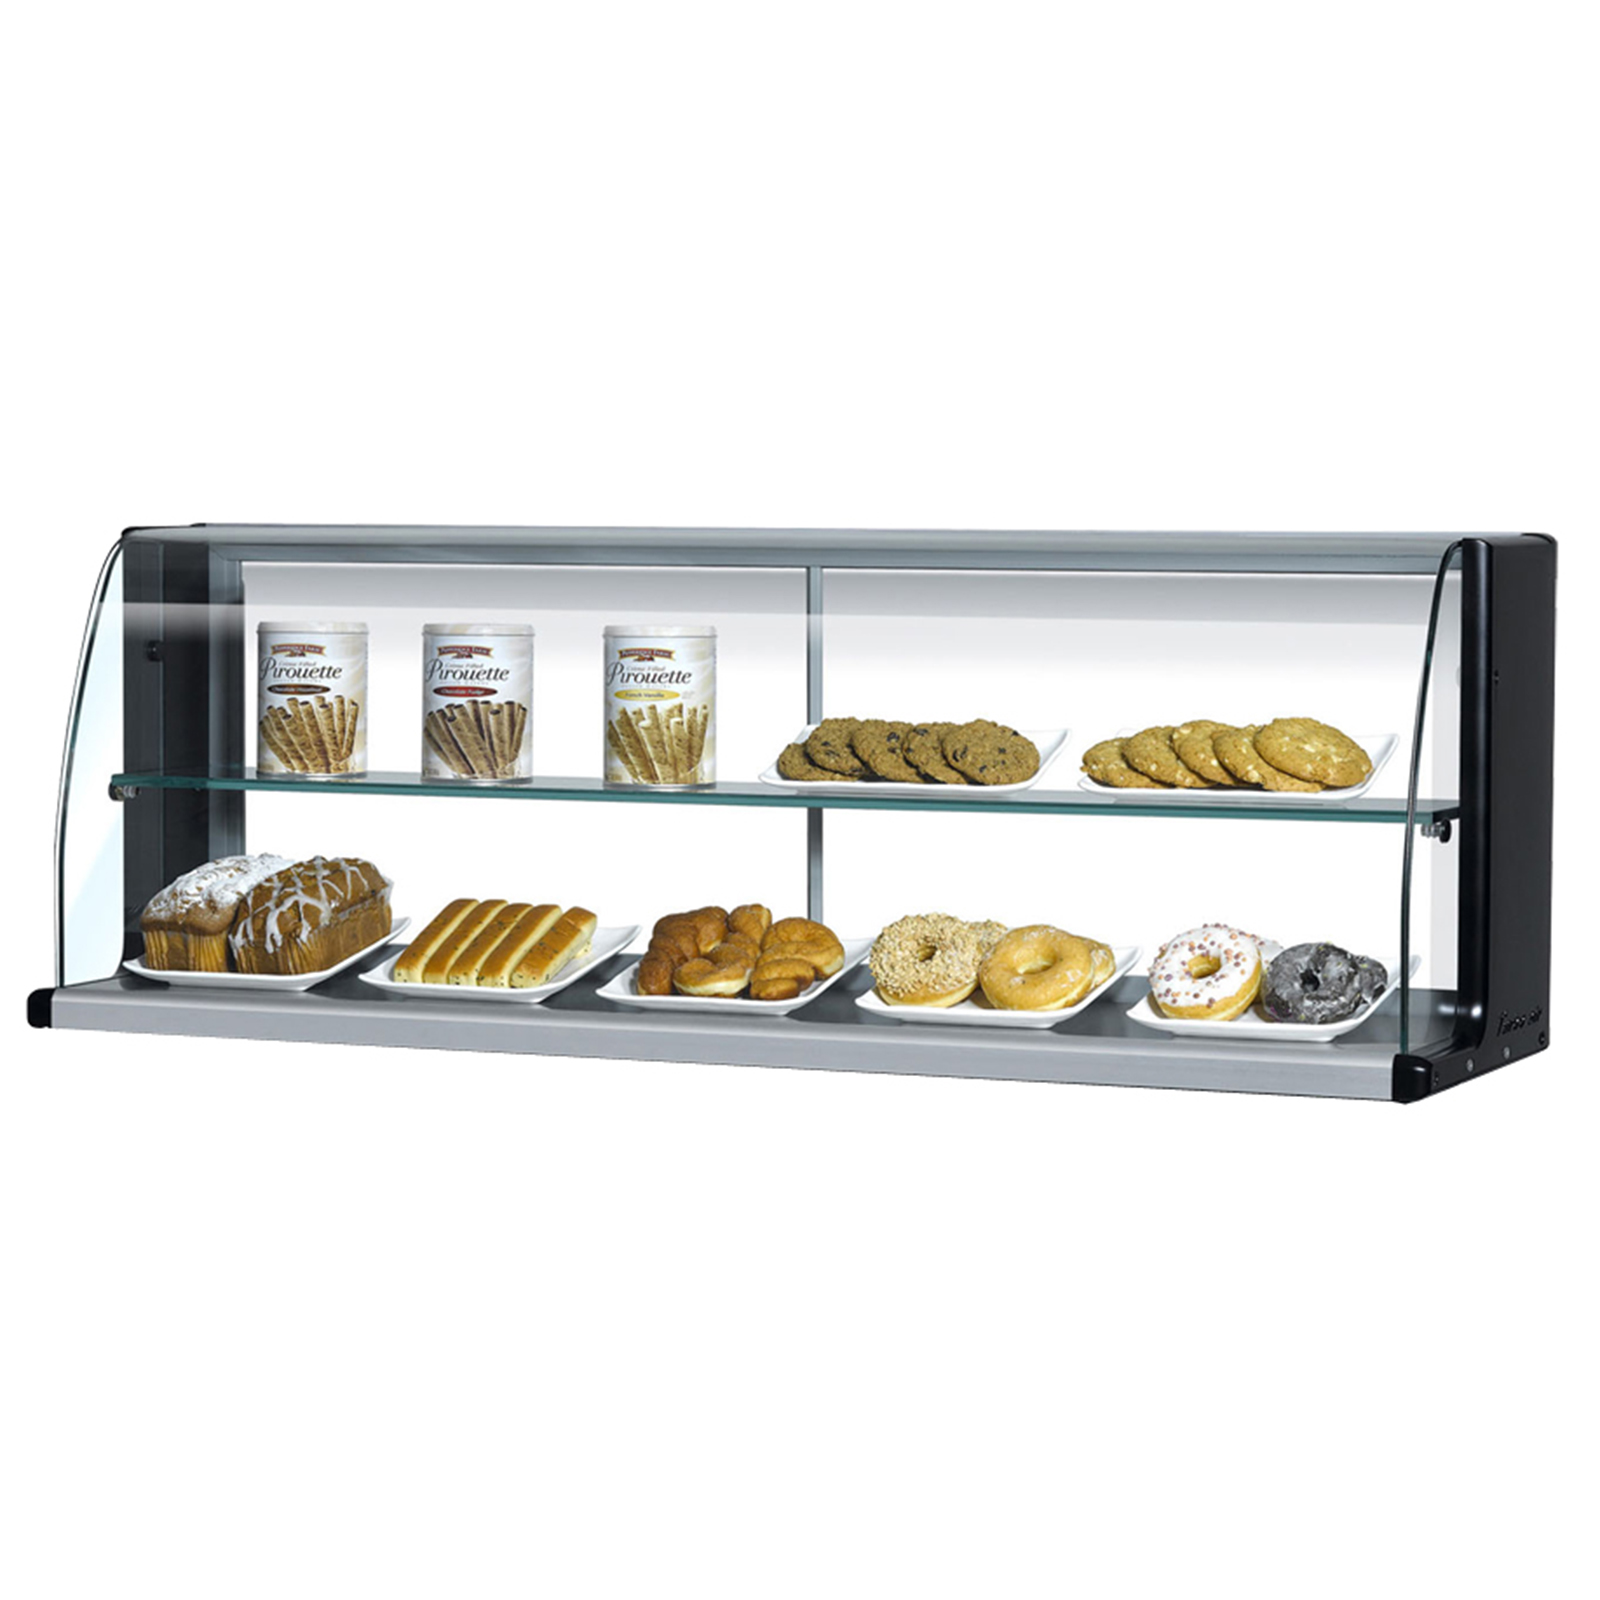 Turbo Air TOMD-50HW display case, non-refrigerated countertop